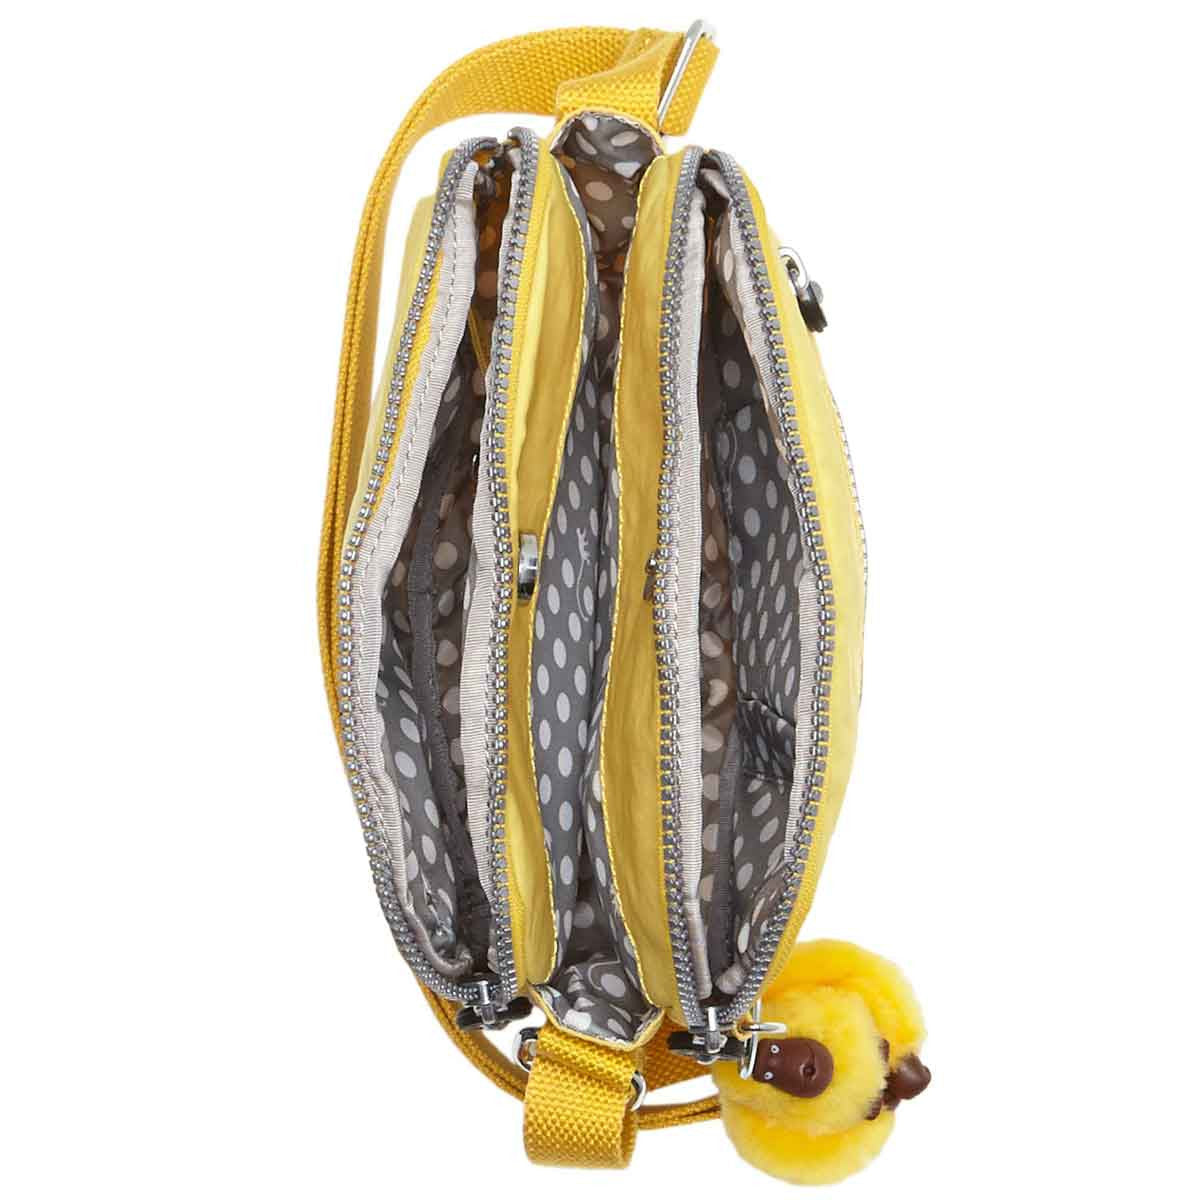 Kipling HB6467-708 Women's Keefe Canary Nylon Crossbody Handbag